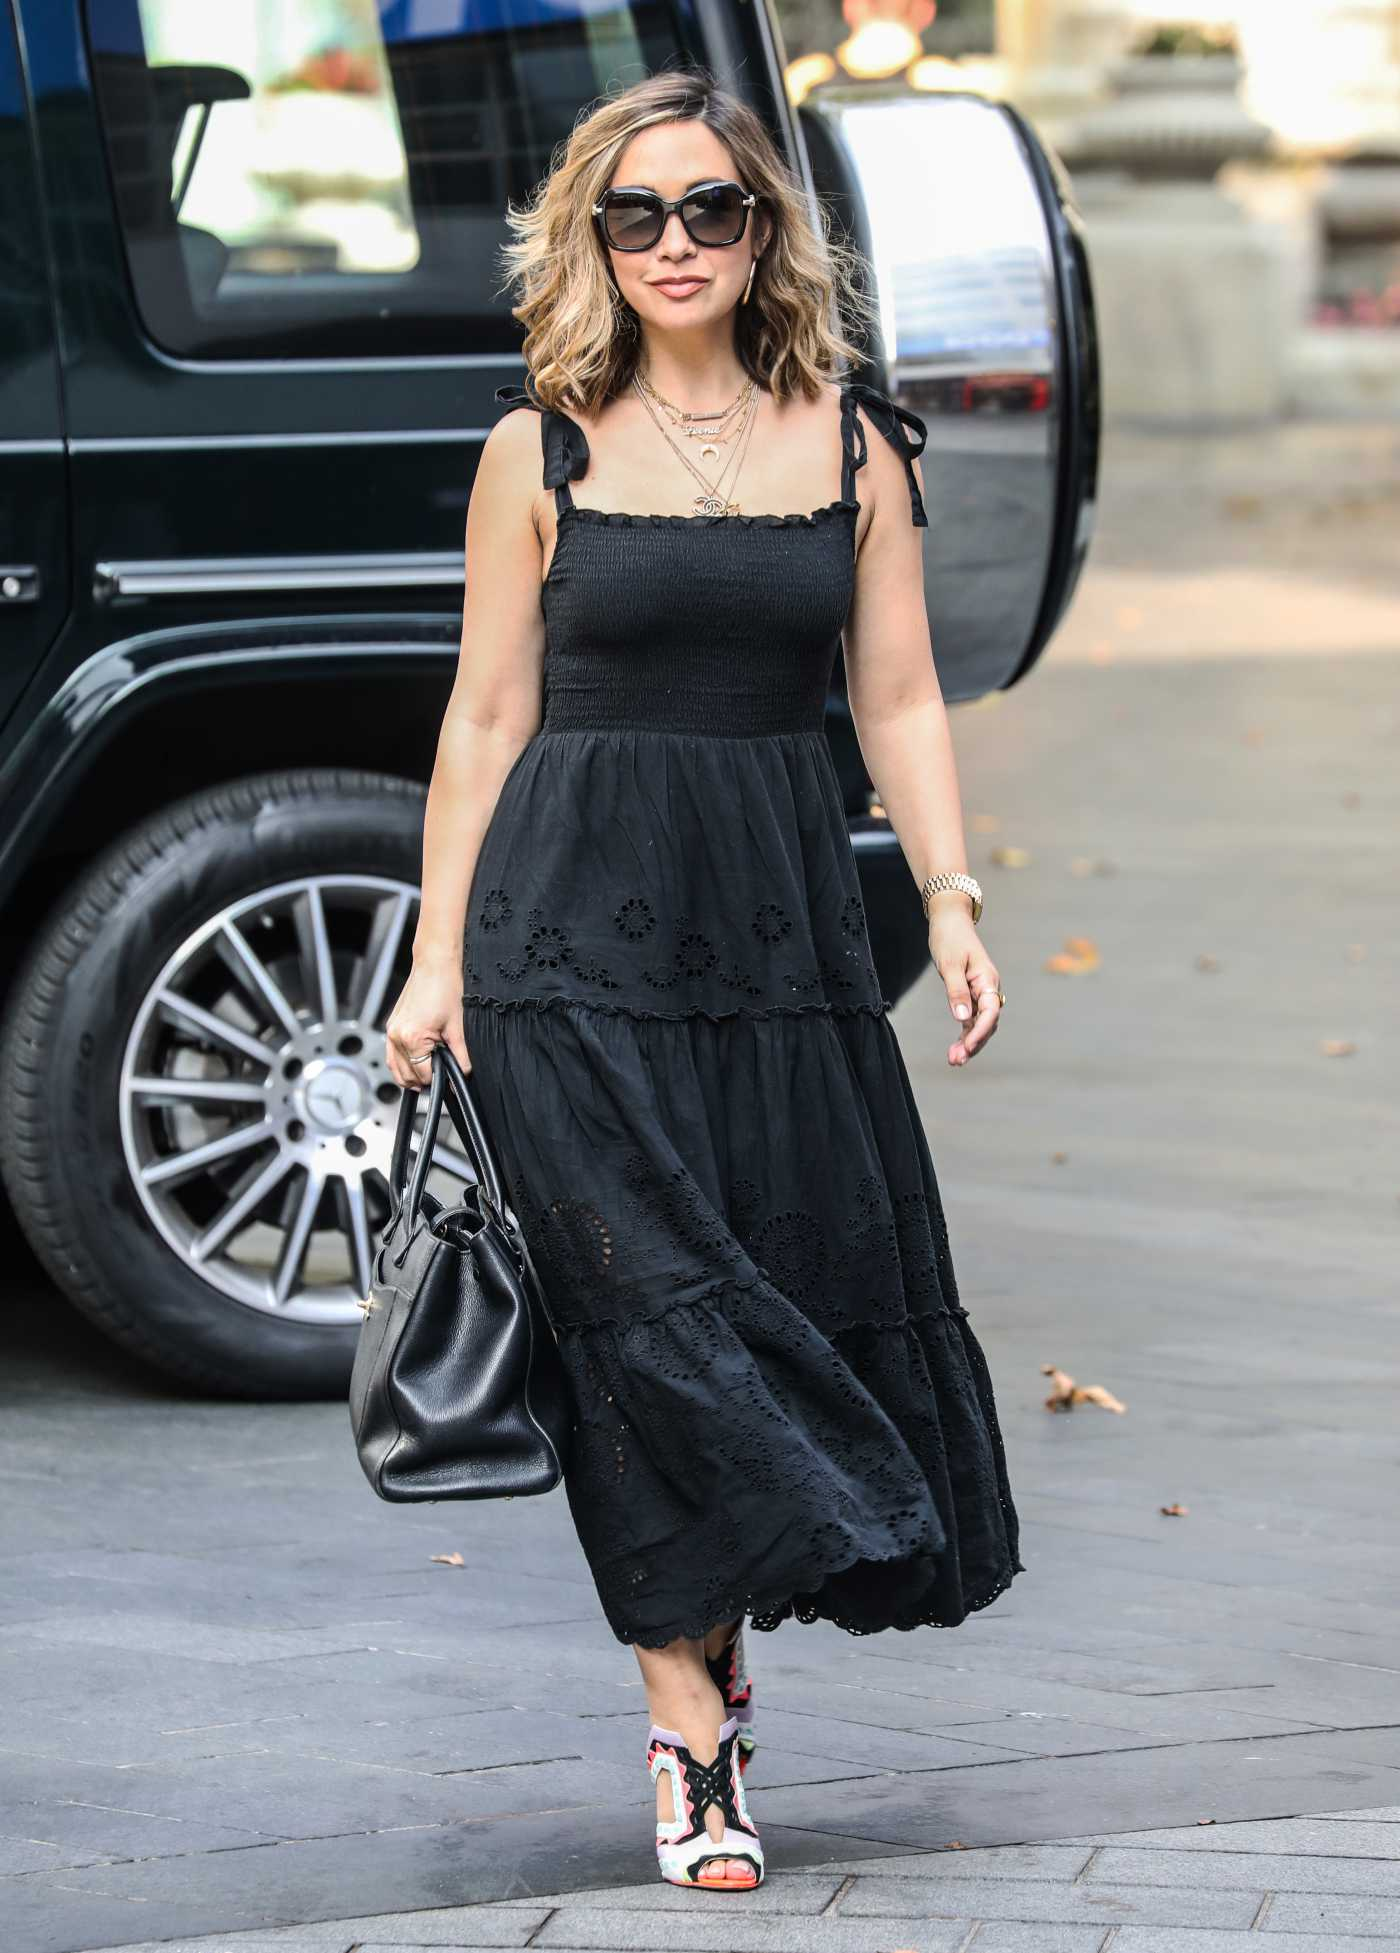 Myleene Klass in a Black Dress Arrives at the Global Radio Studios in London 08/13/2020